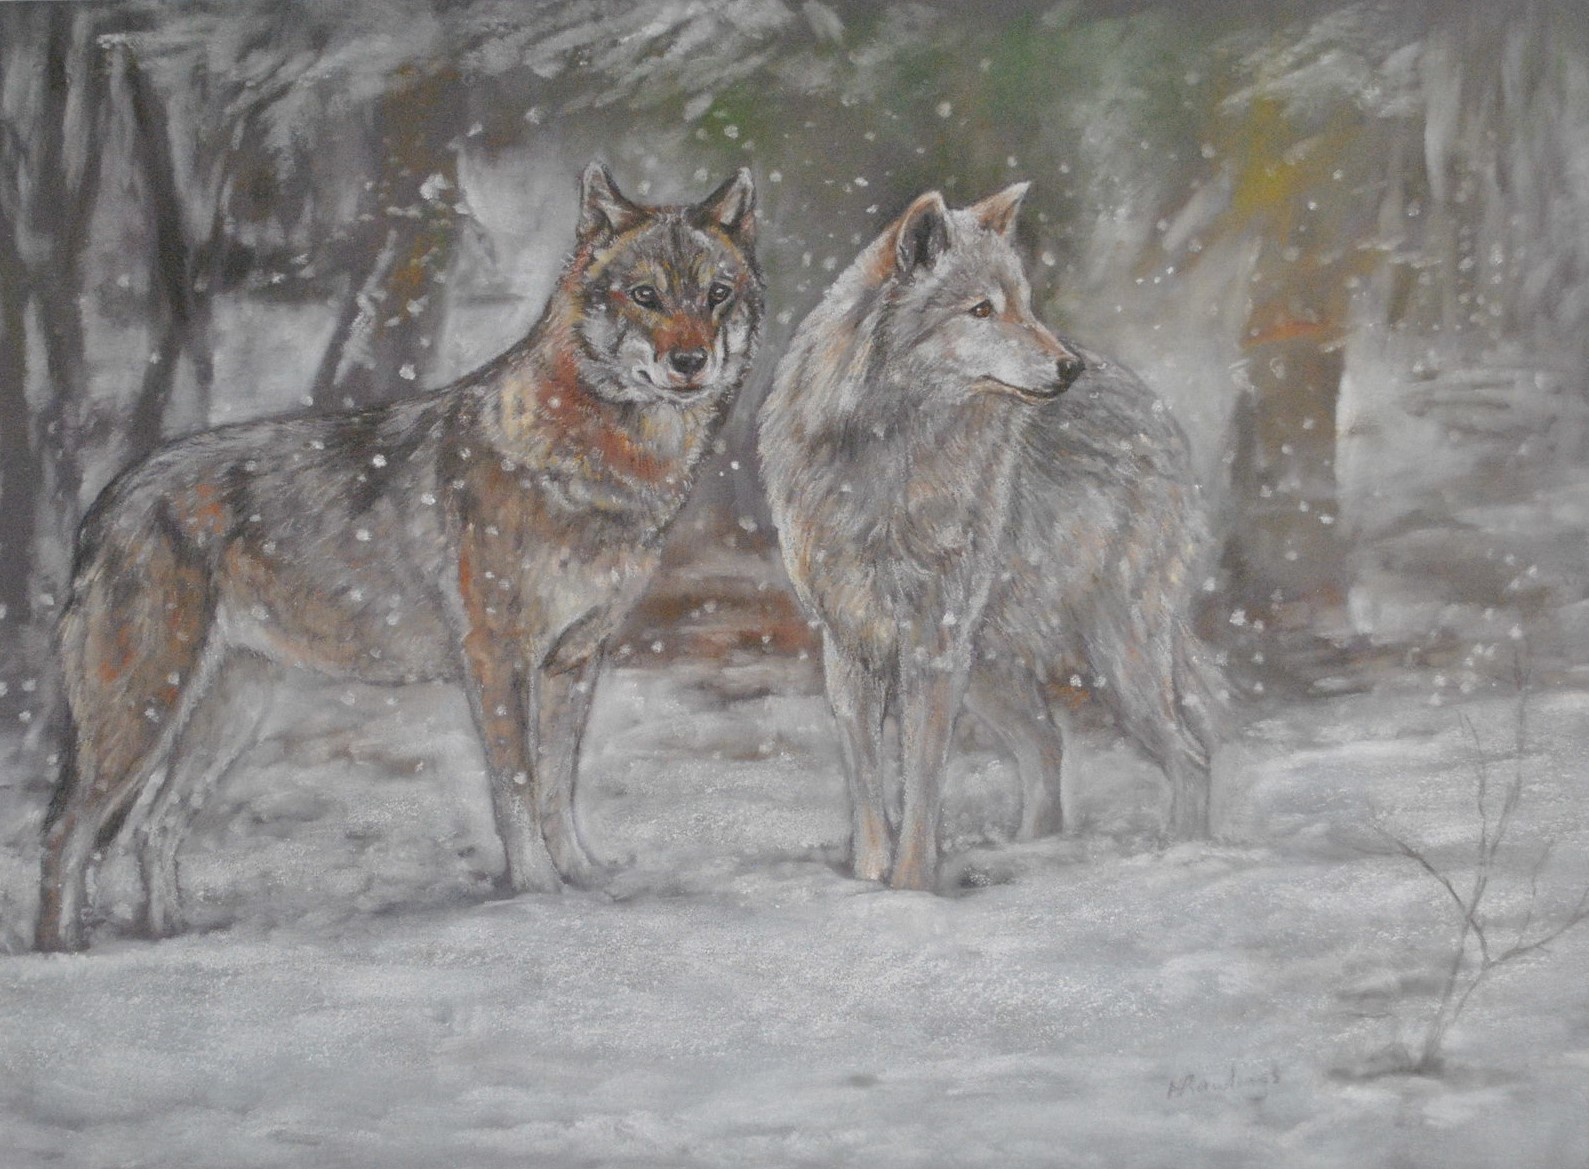 Winter Wolves by Helen Rawlings - Pastel on Pastel Board - Framed Original - 32x18'' - £325